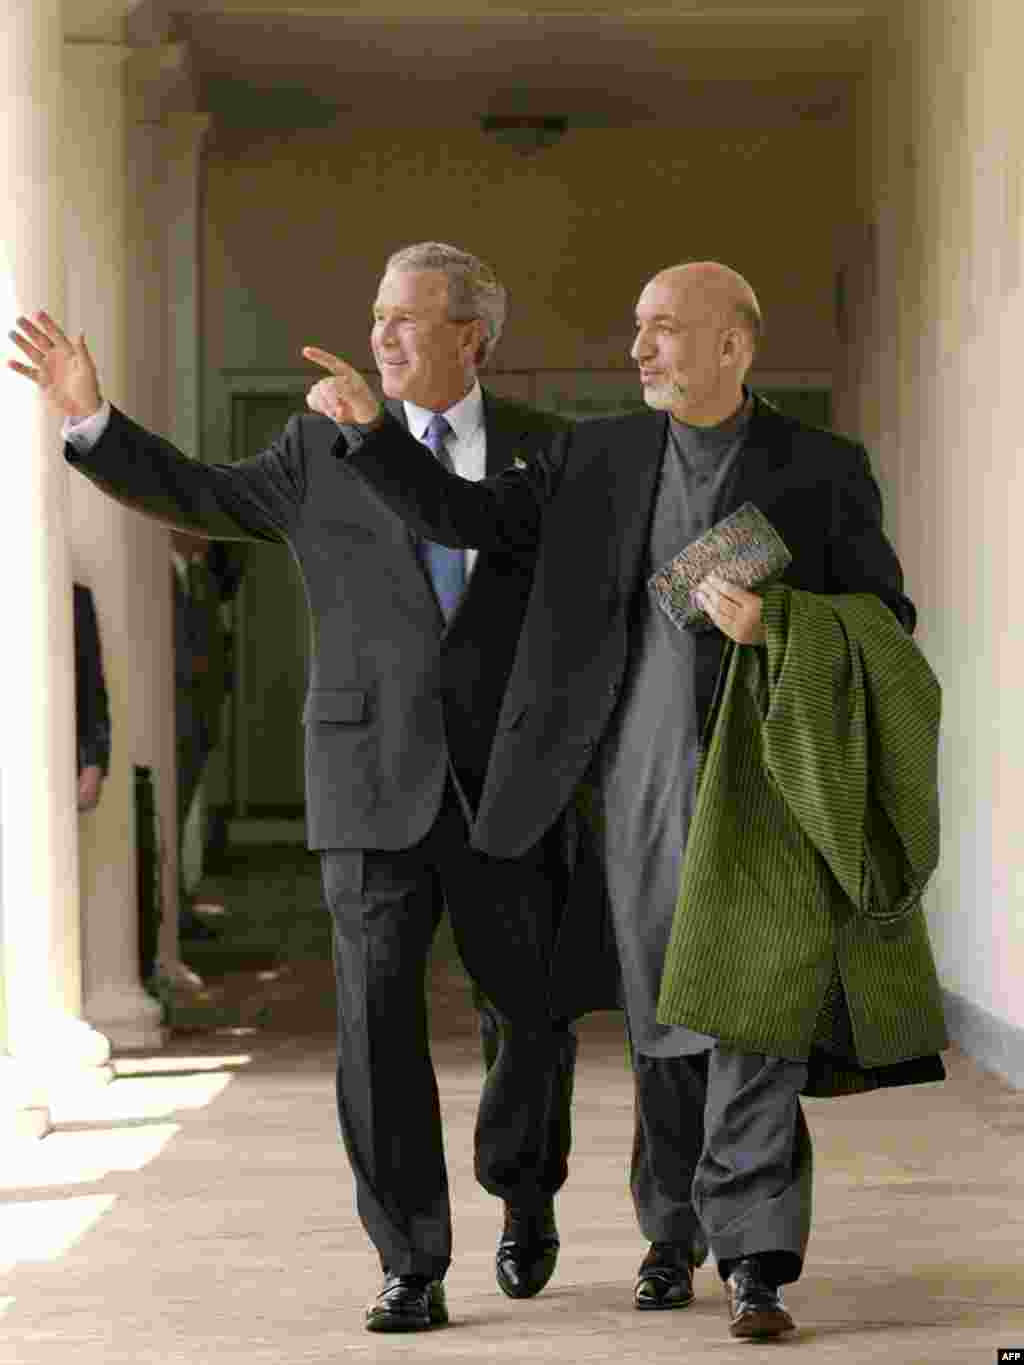 Afghanistan and Karzai - U.S. President George W. Bush (left) walks with Afghan President Hamid Karzai after speaking to reporters in the Rose Garden at the White House on June 15, 2004, in Washington, D.C.